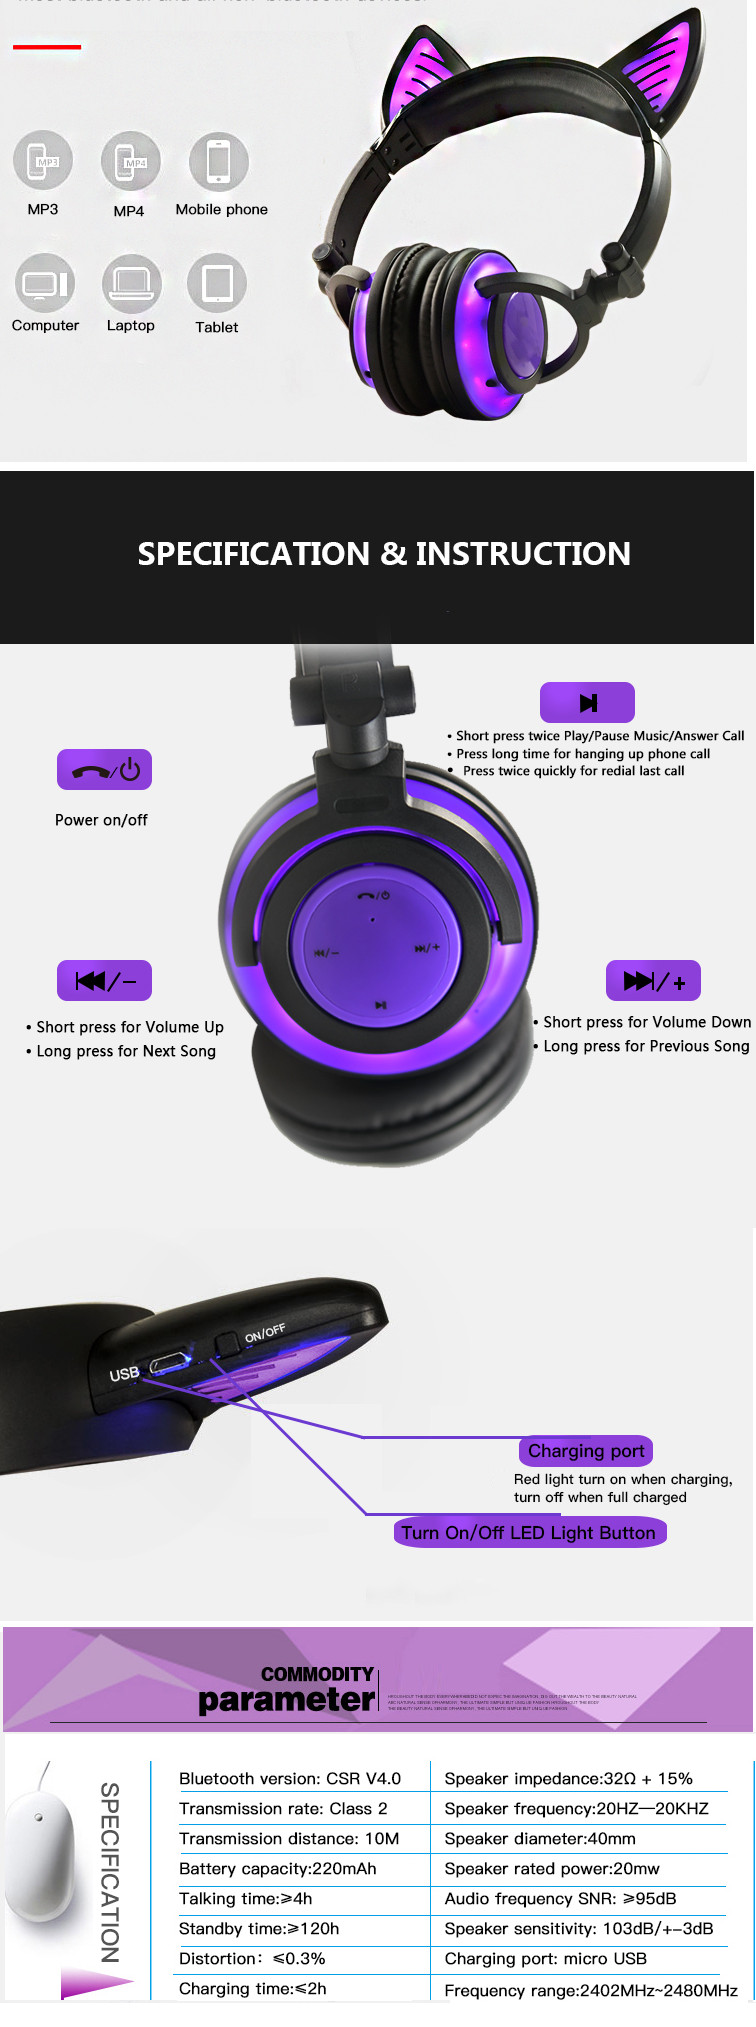 Features for Headphone